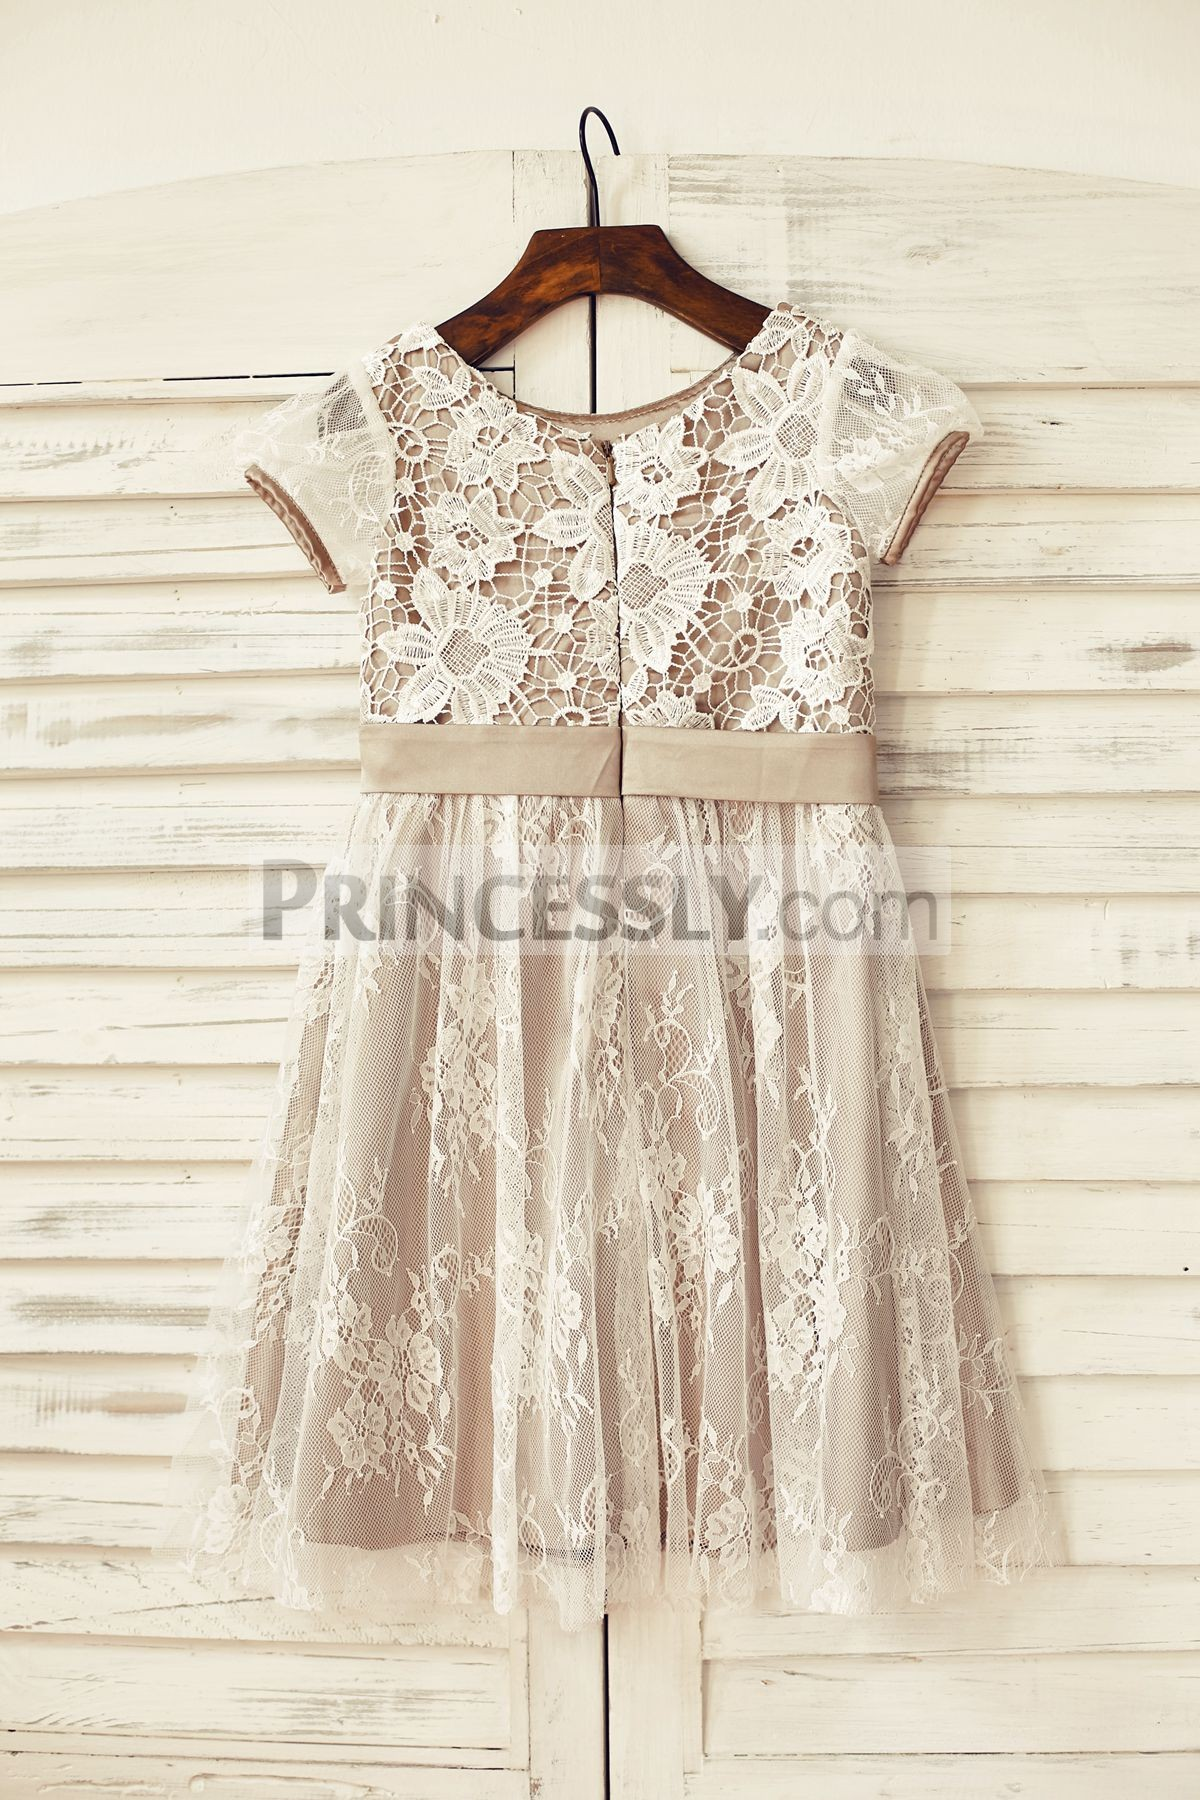 Ivory lace overlay brown satin wedding baby girl dress